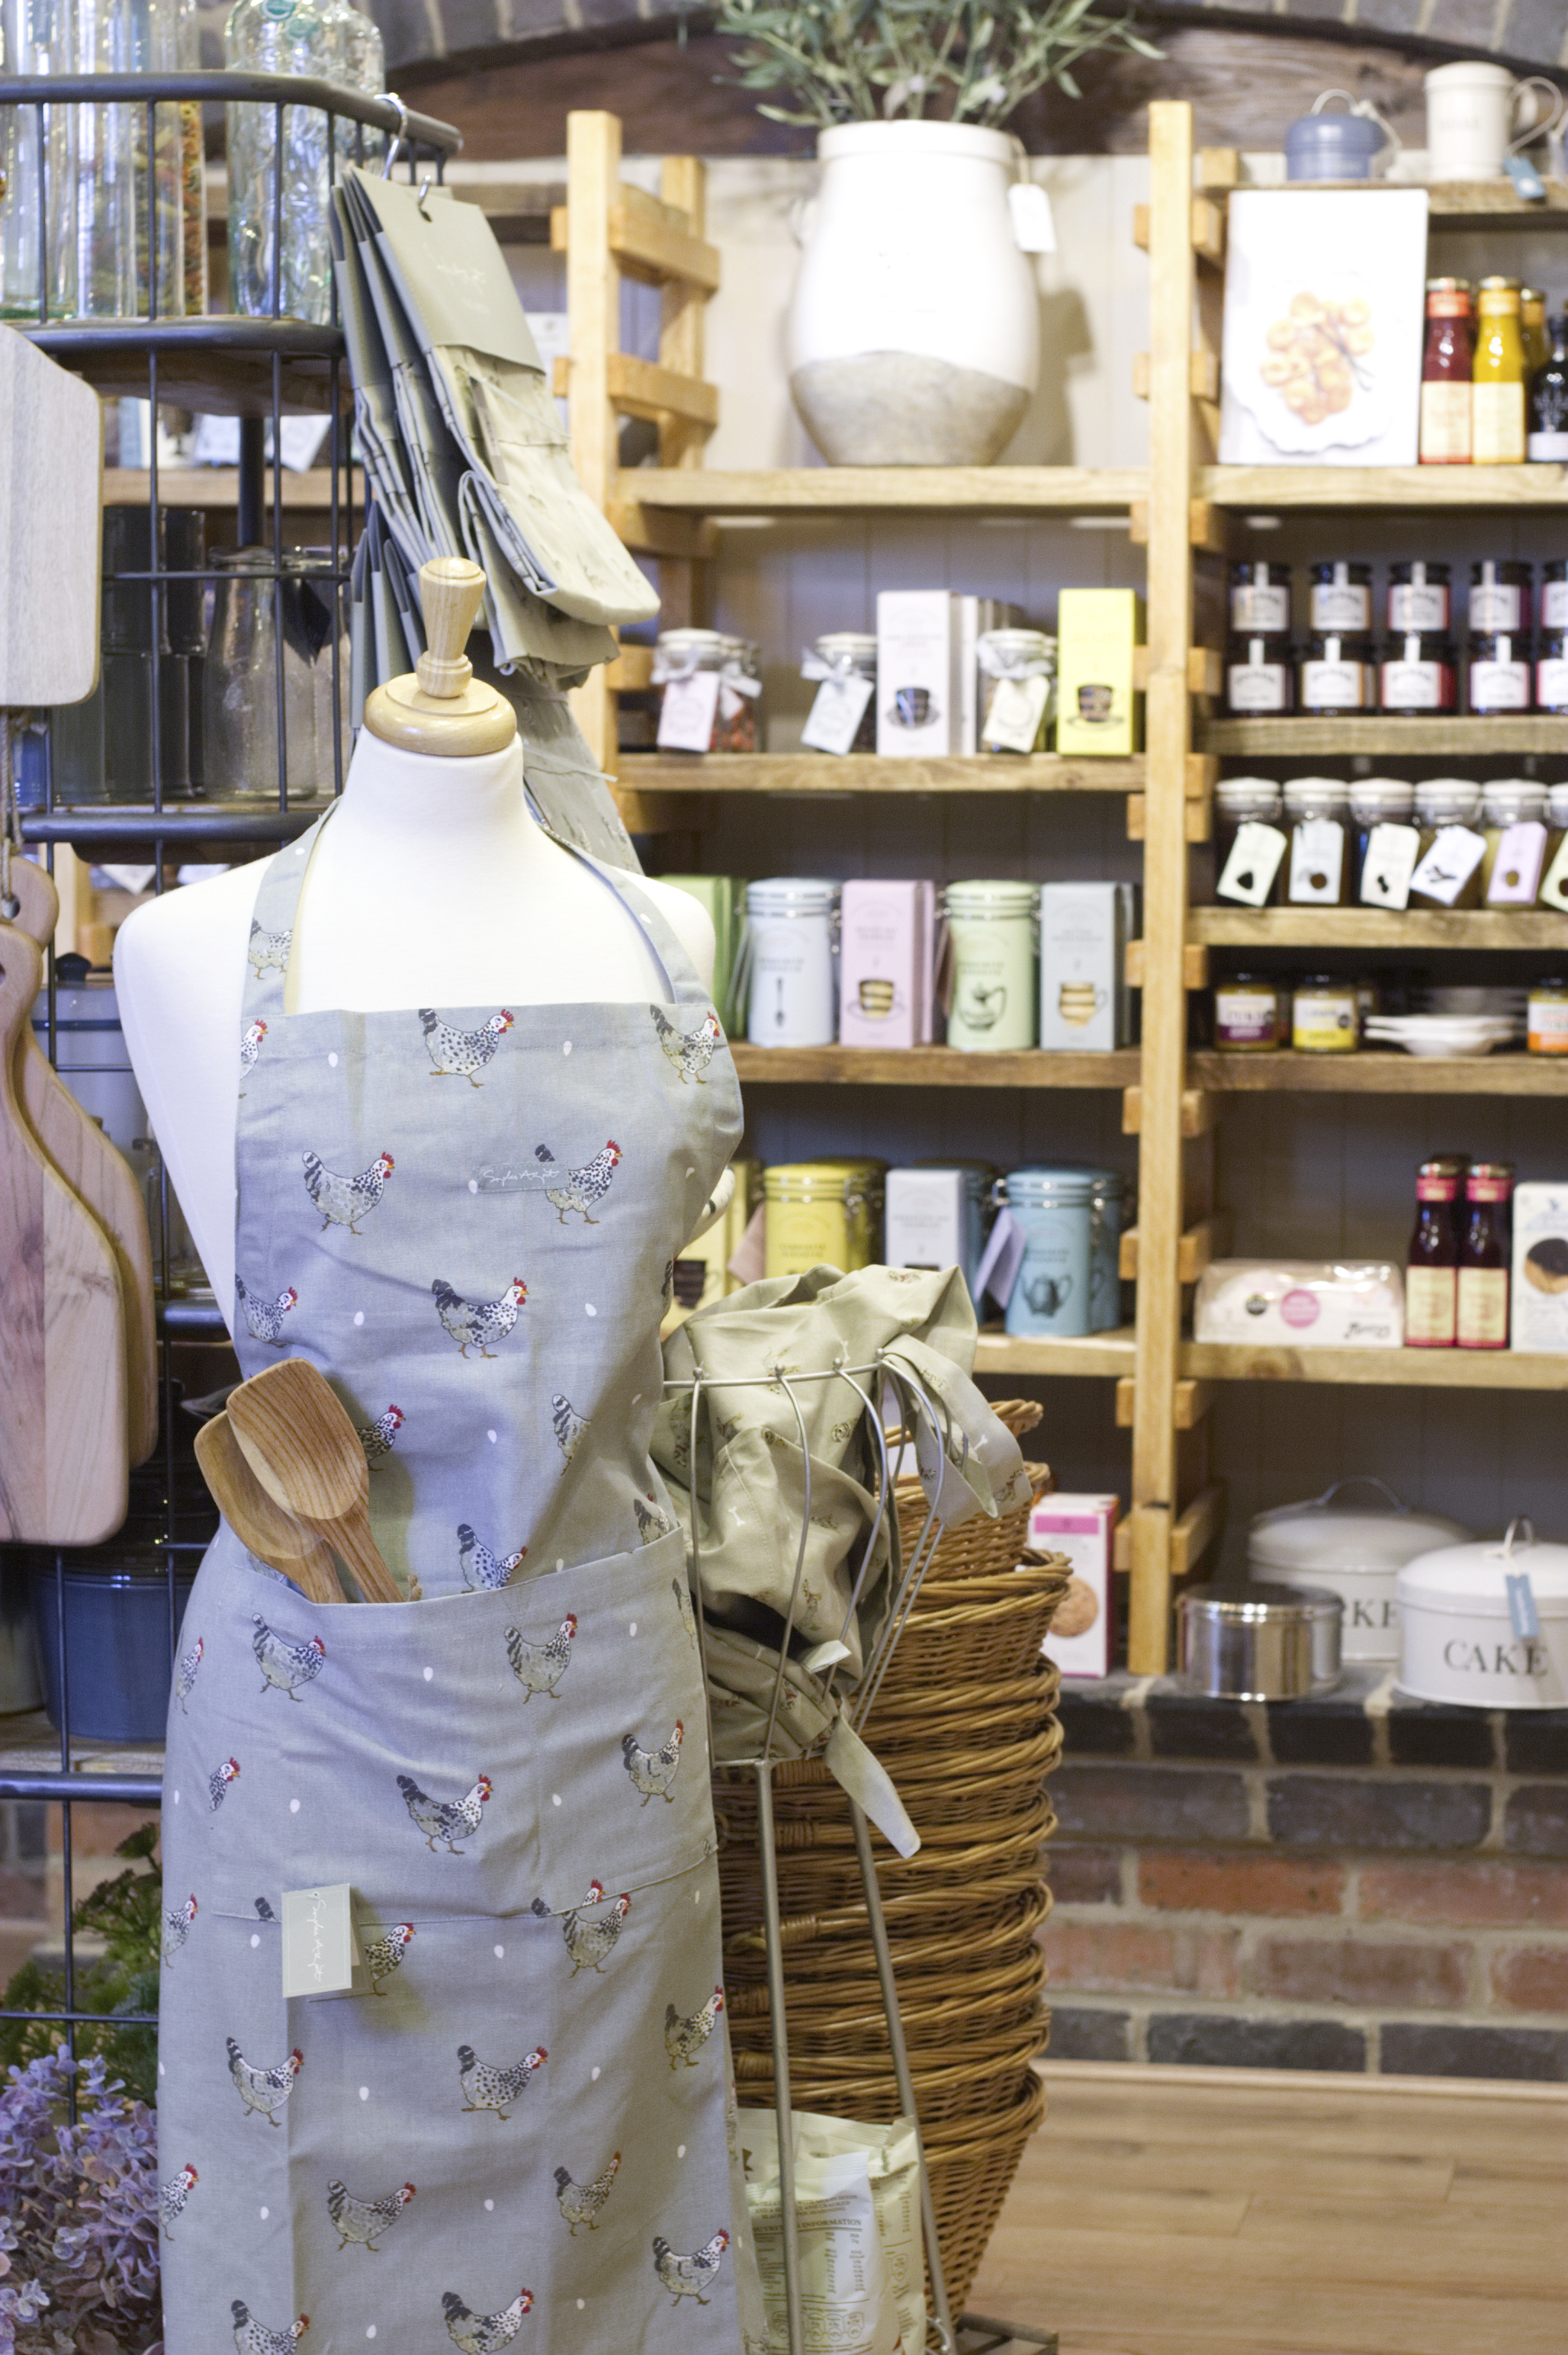 Shop manikin wearing an apron standing in front of shelves of products